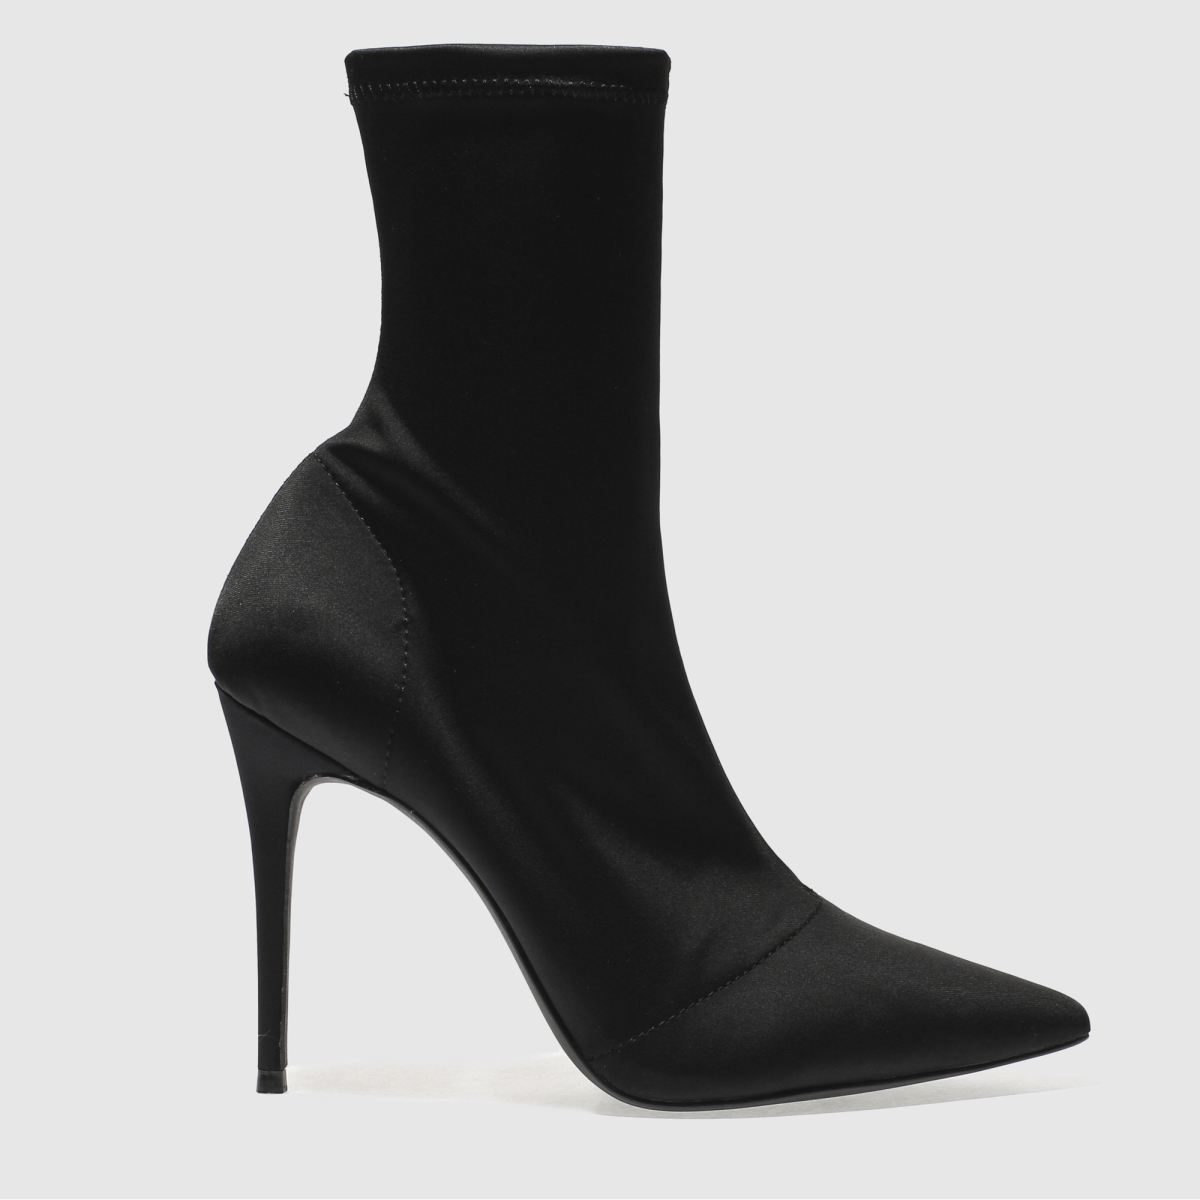 Schuh Black Vibes Boots